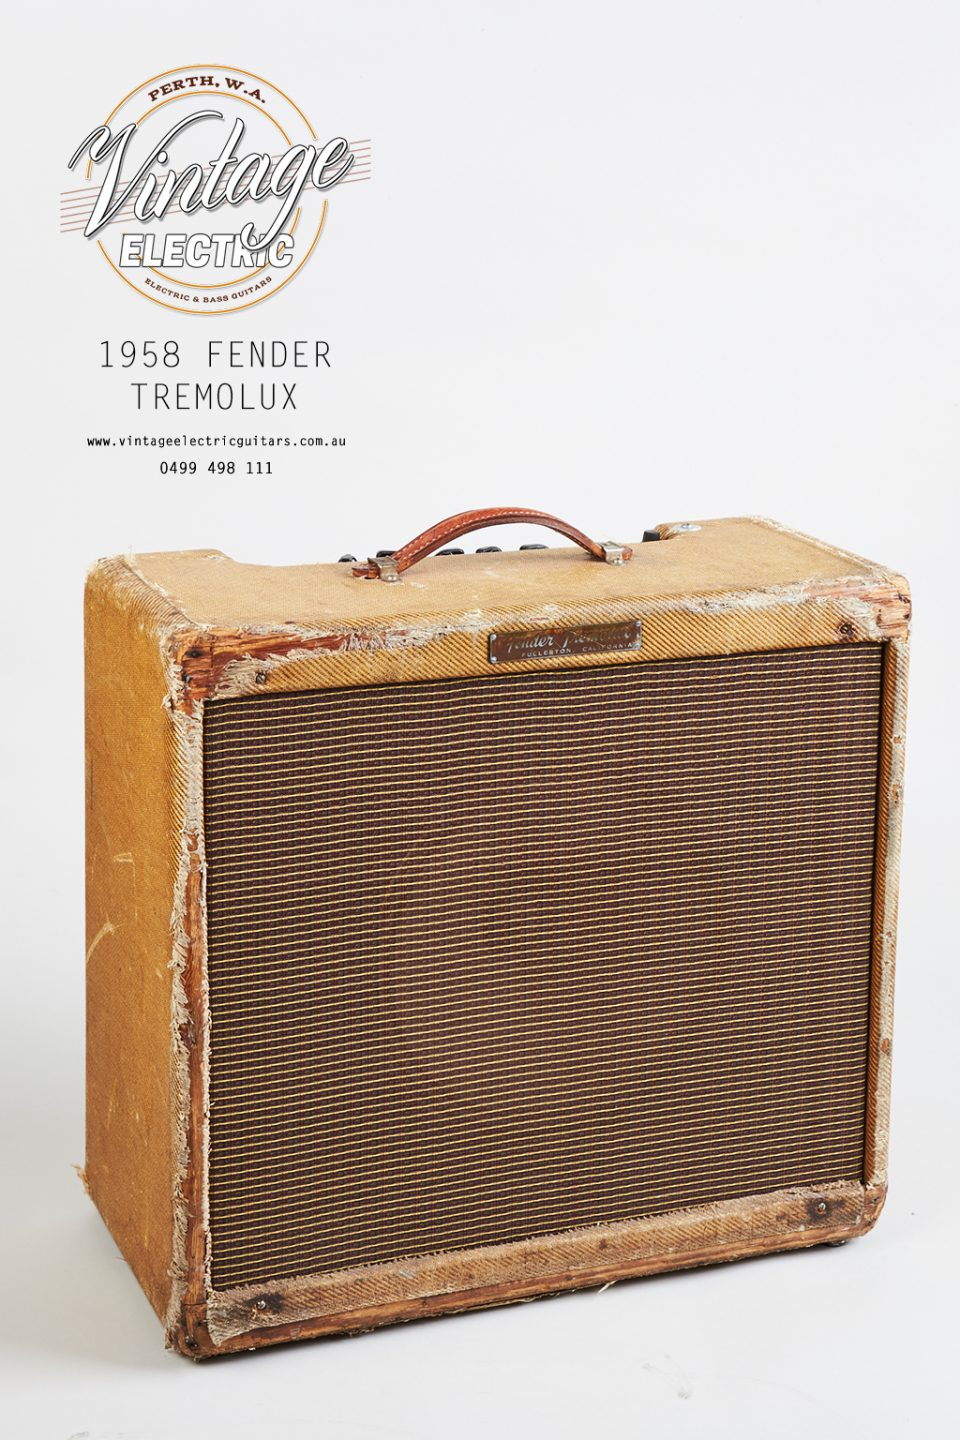 1958 Fender 4 Channel Tremolux